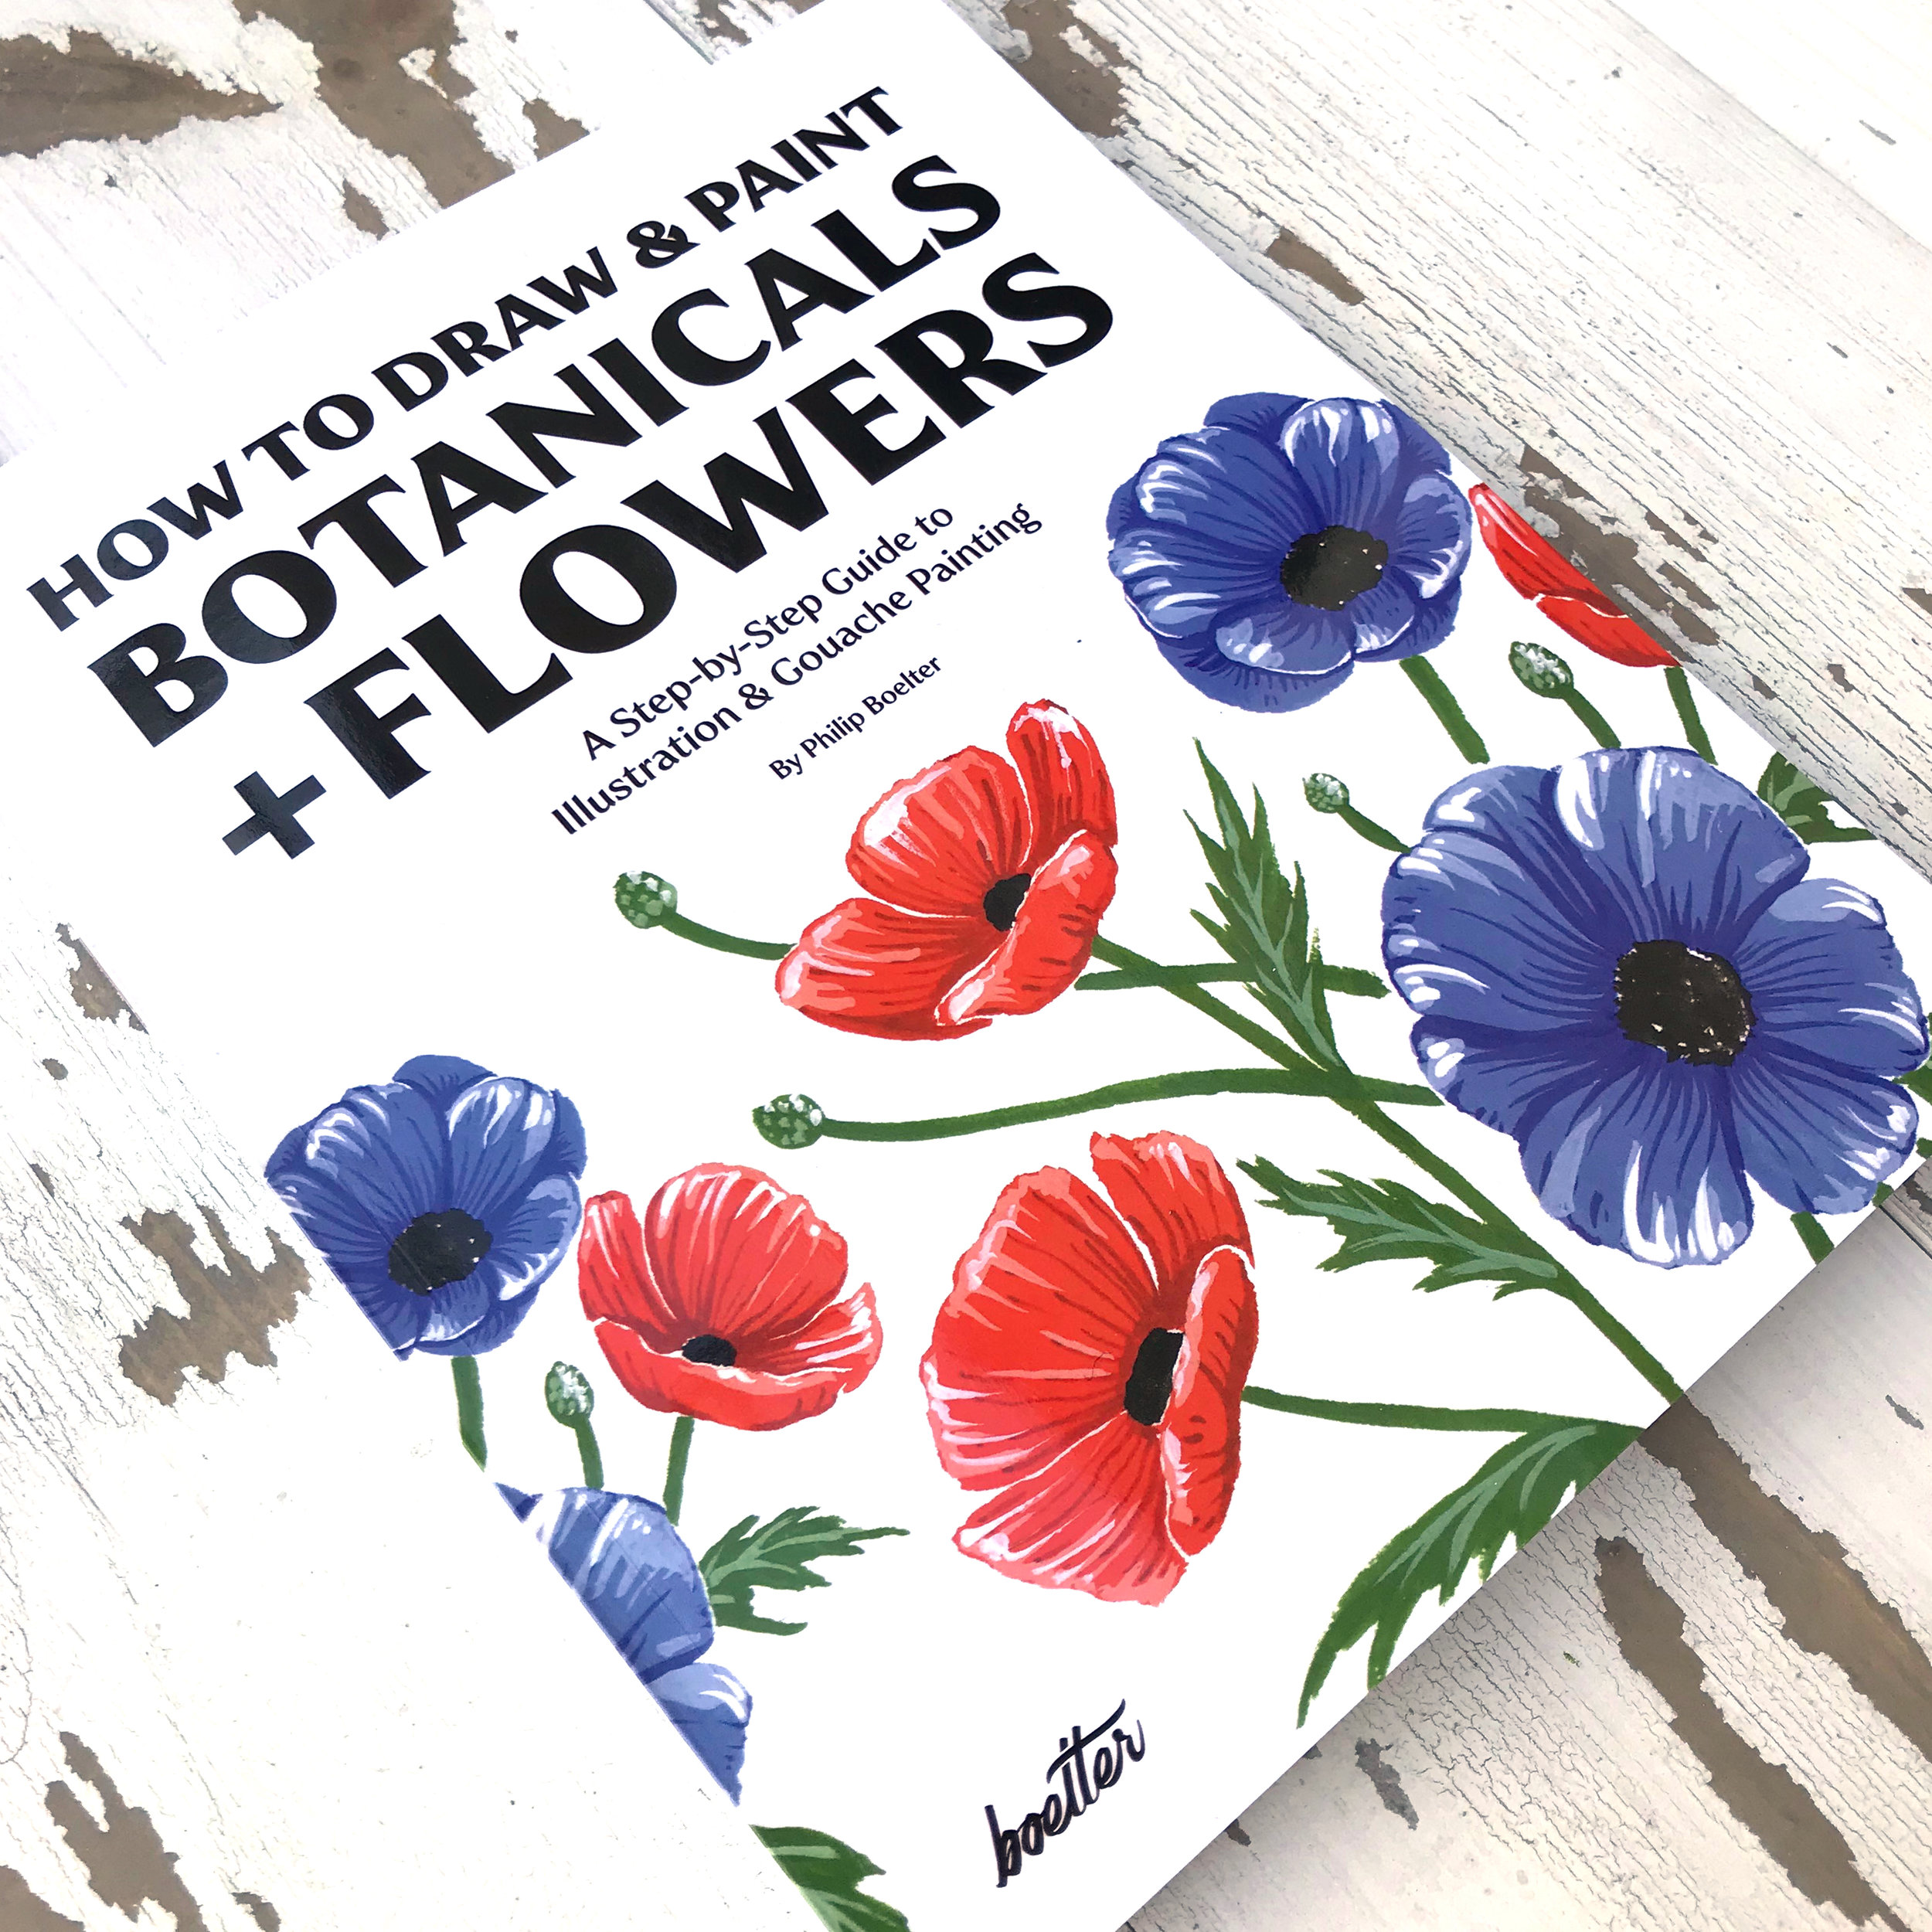 How to Draw and Paint Botanicals and Flowers the book cover